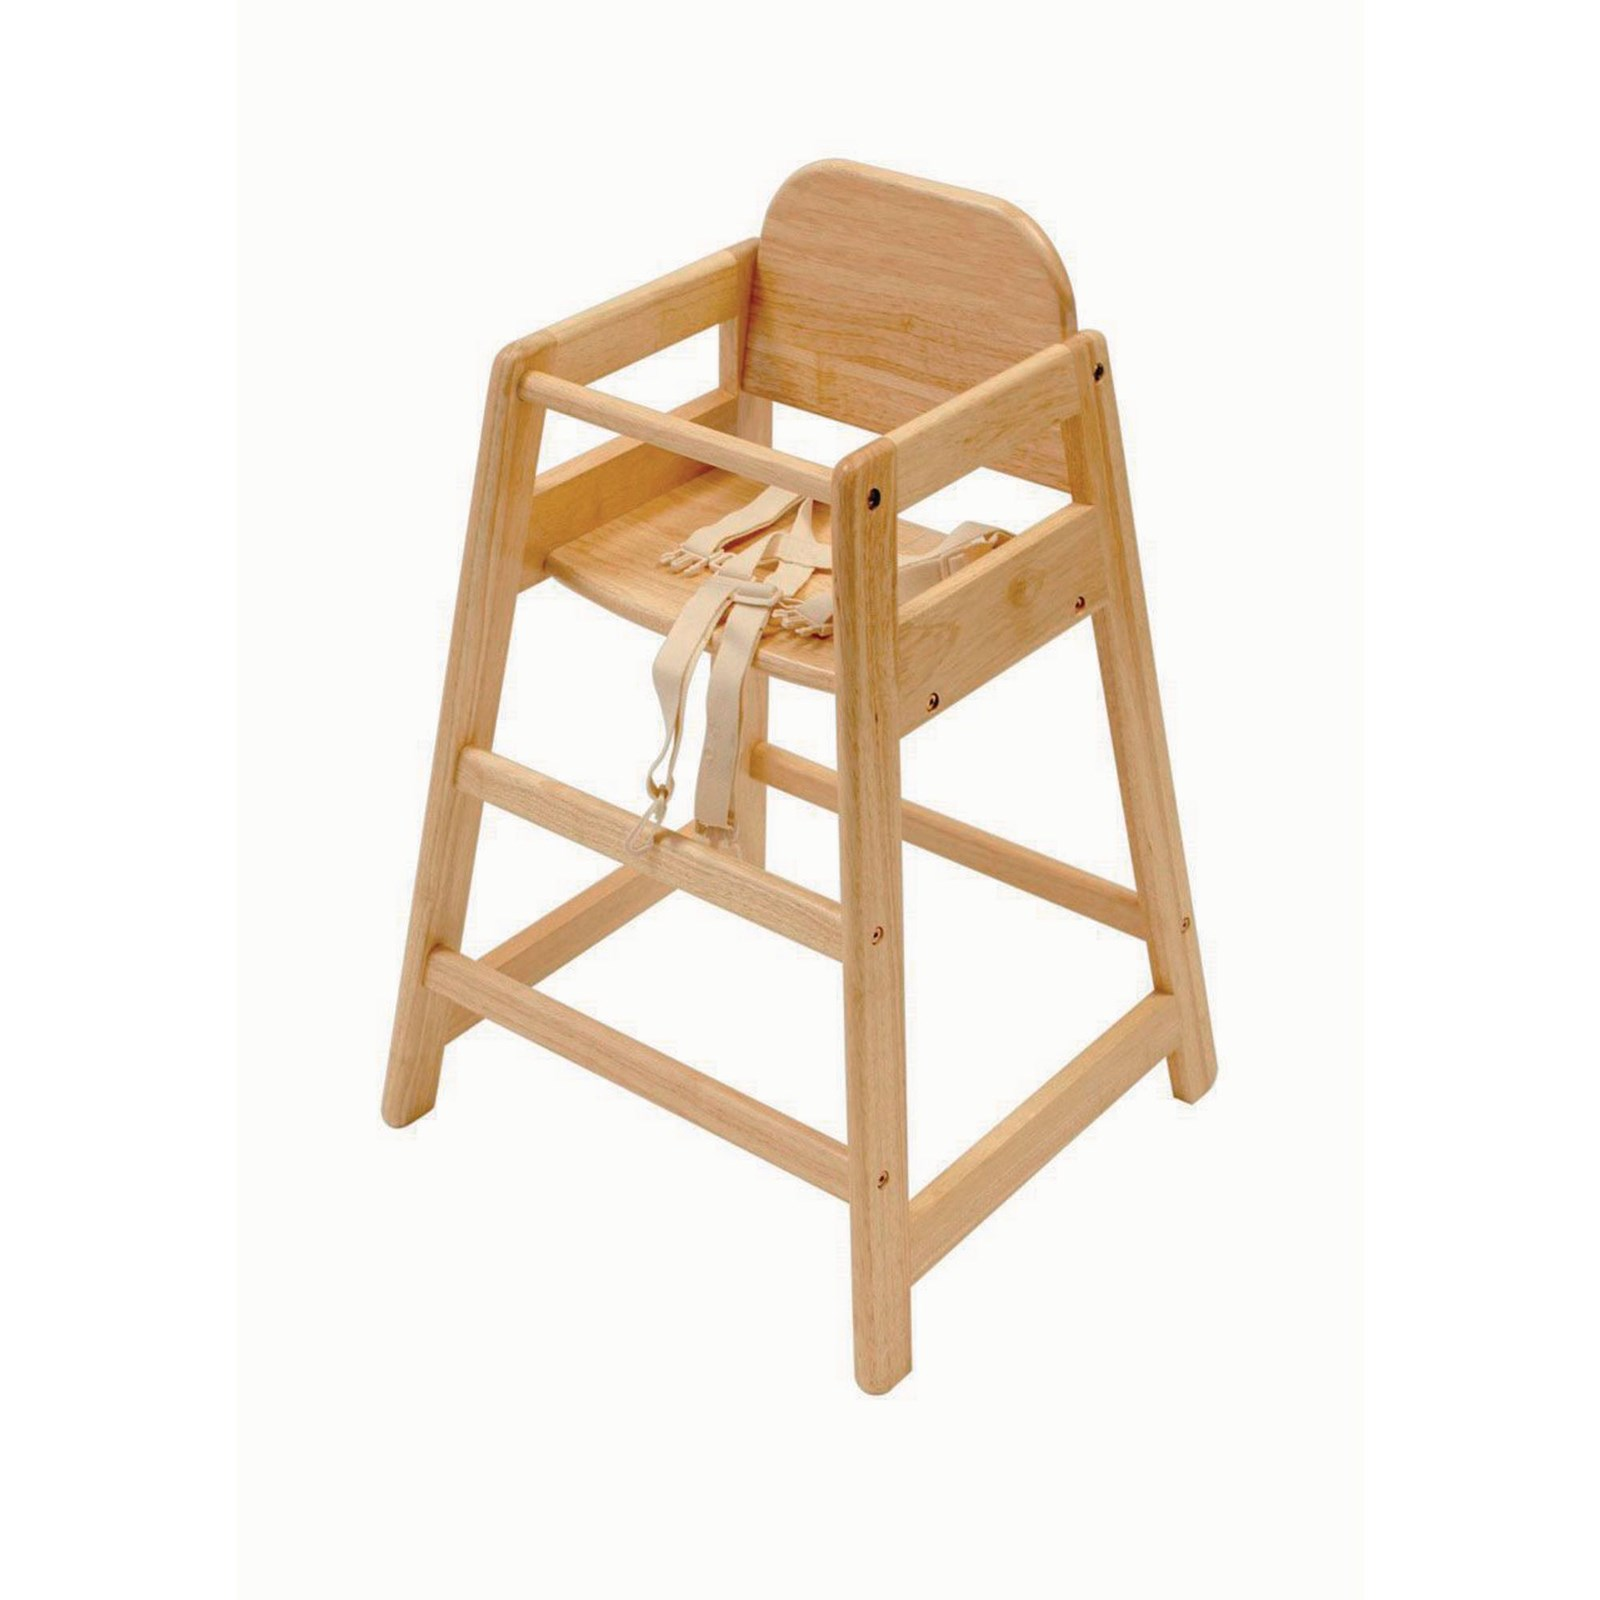 safety chairs high feeding wooden chair highchair image from timba